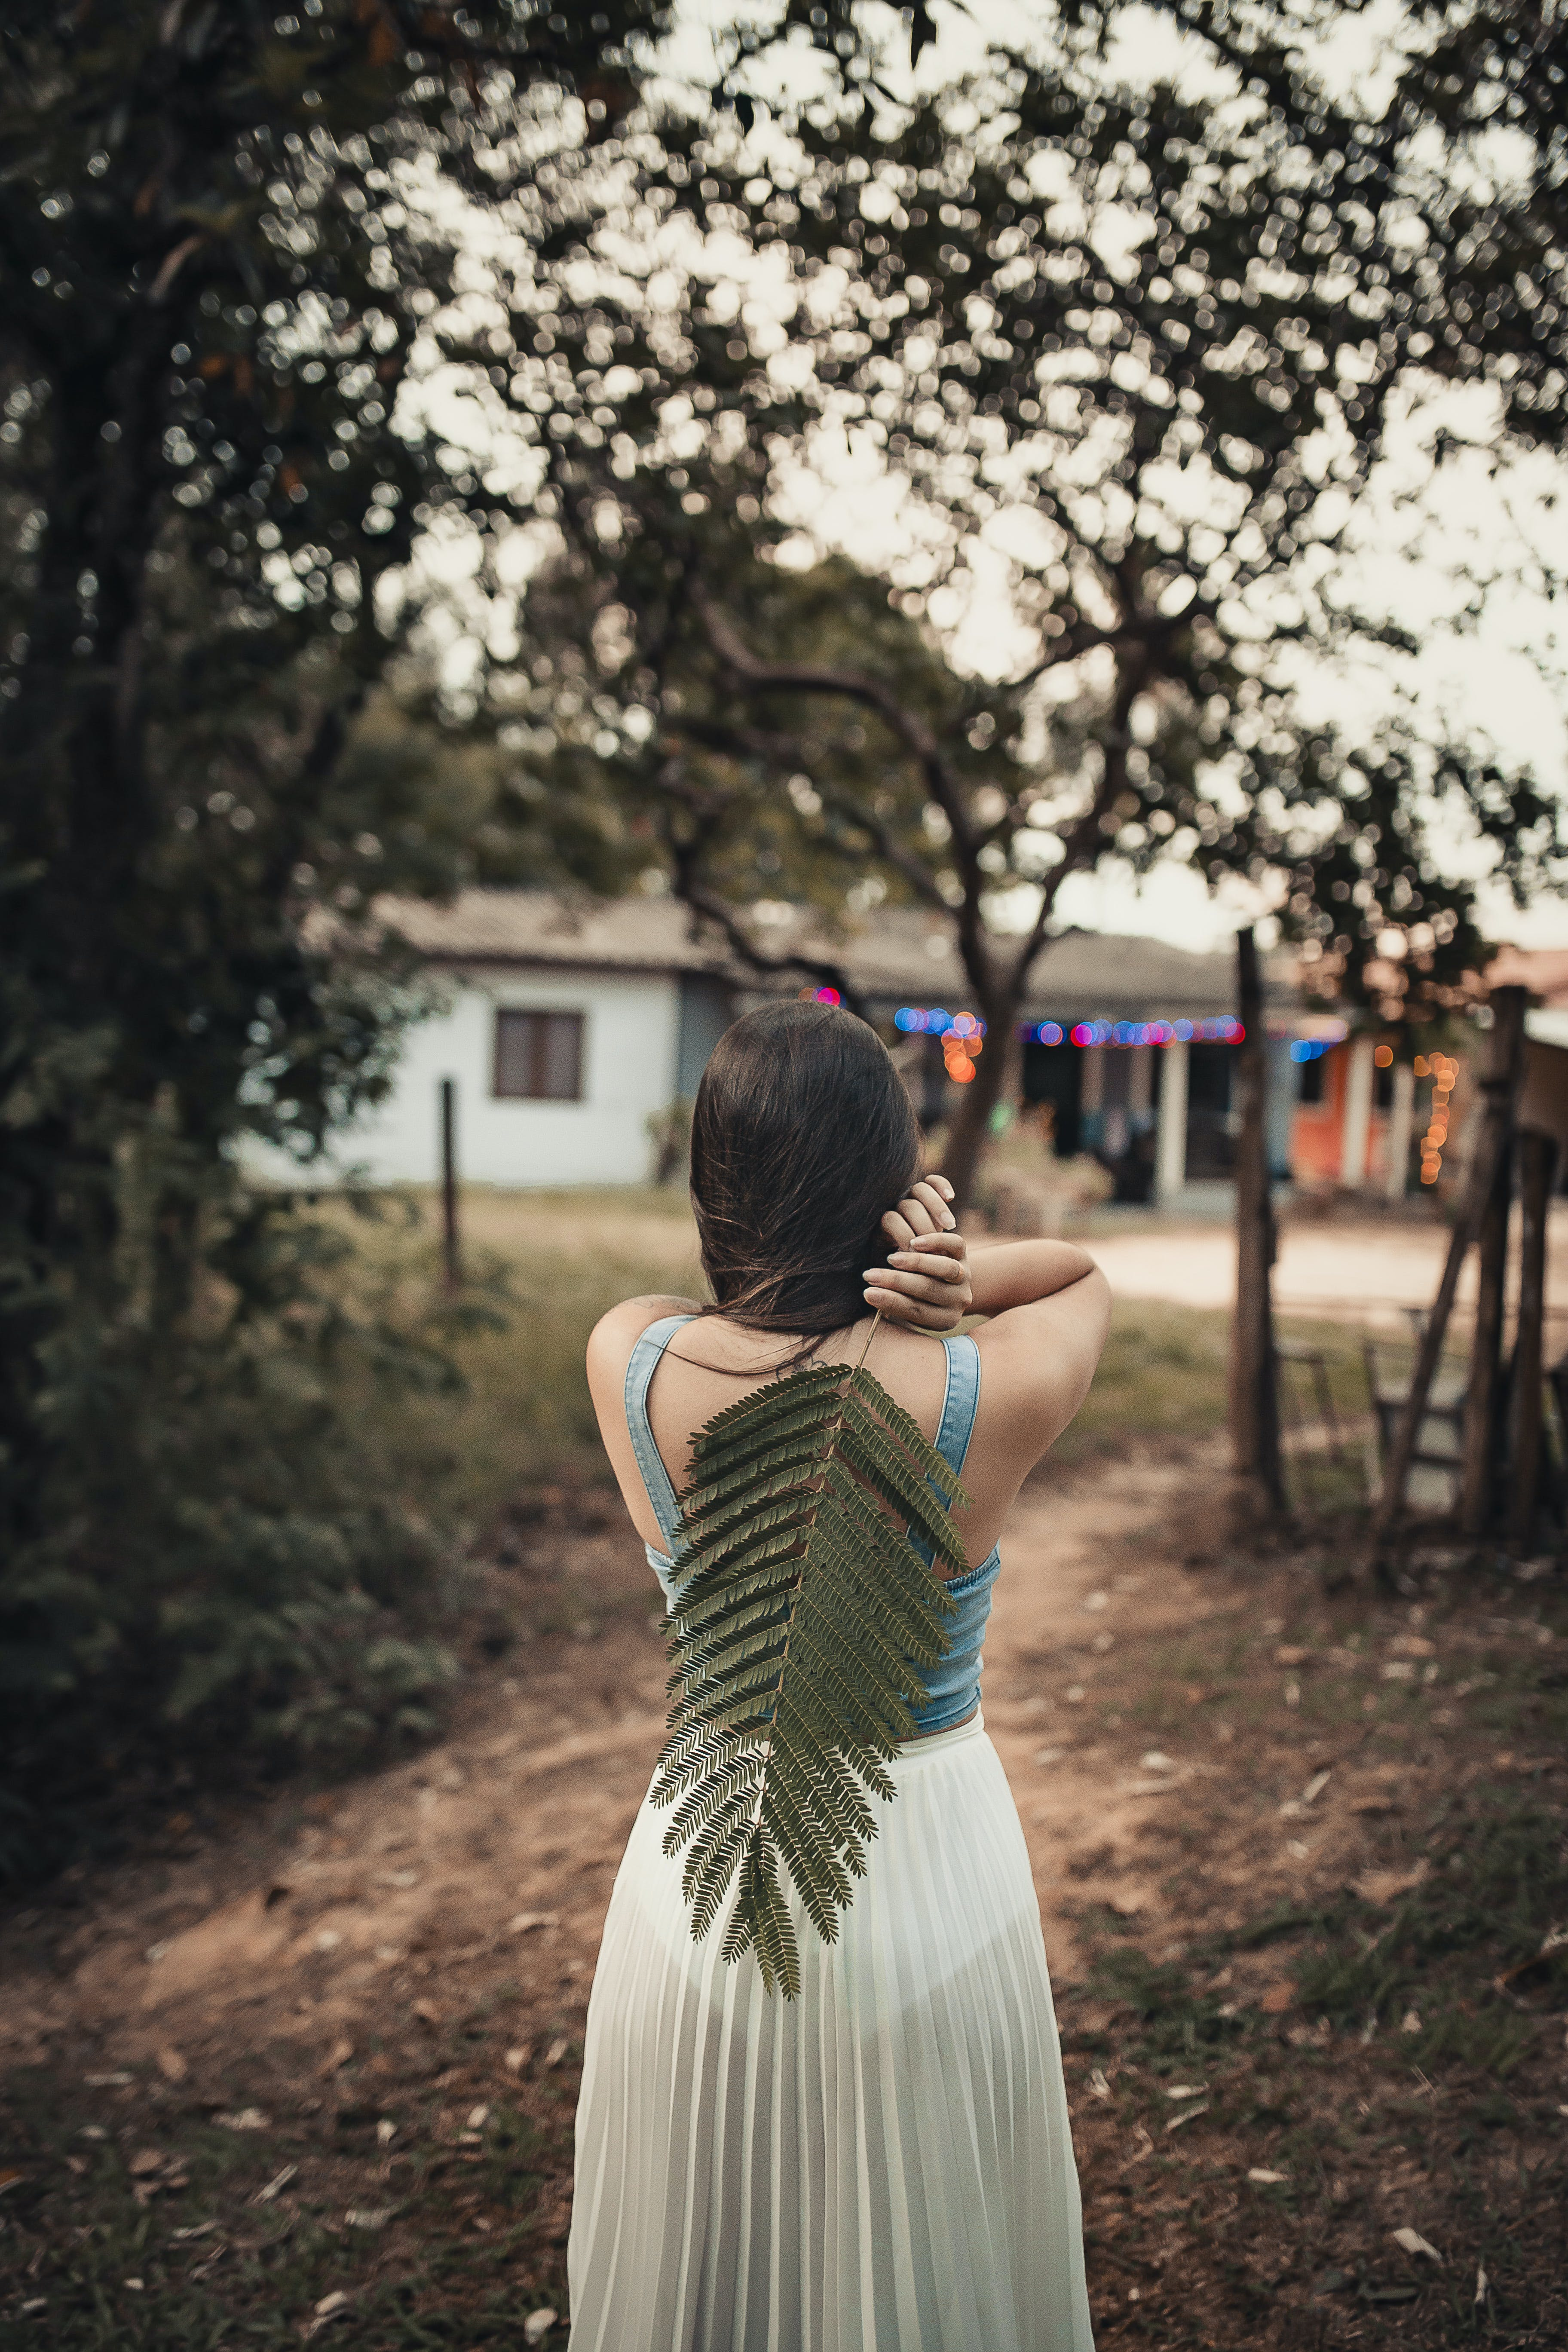 Woman in Sleeveless Dress Holding Large Leaf